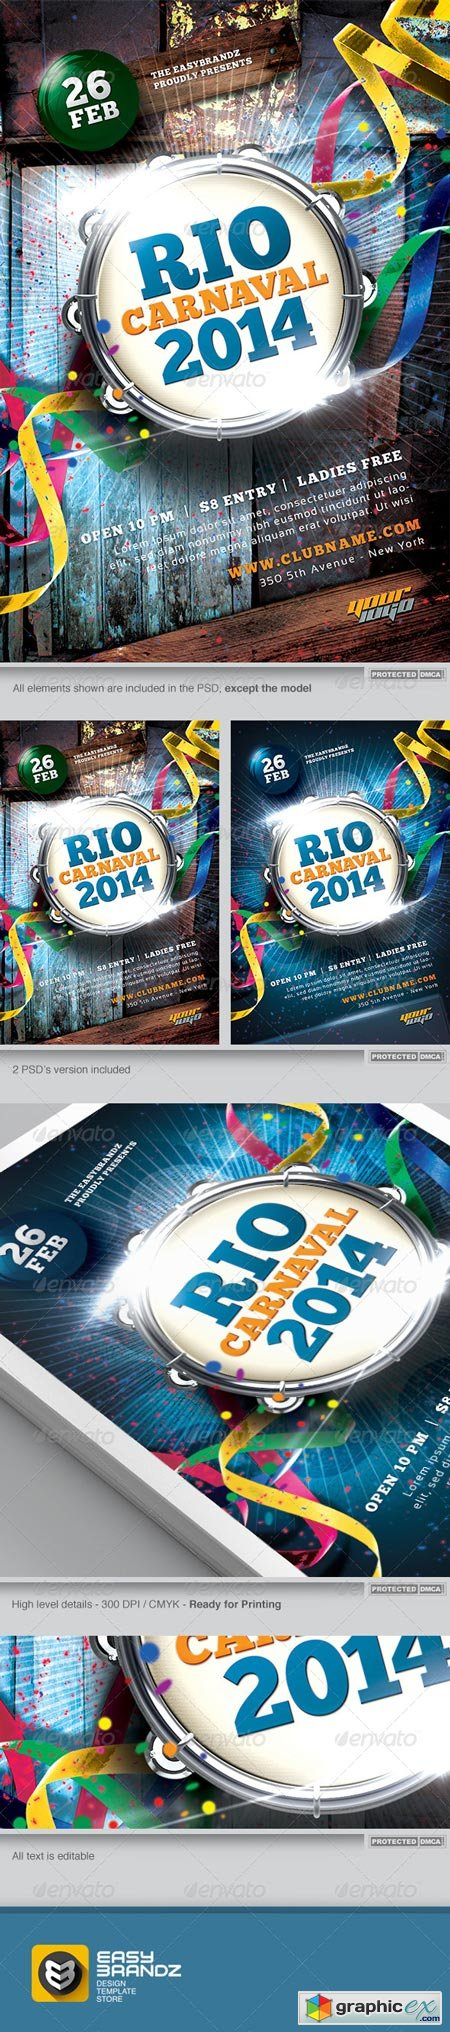 Carnaval 2014 Flyer Template 6490241